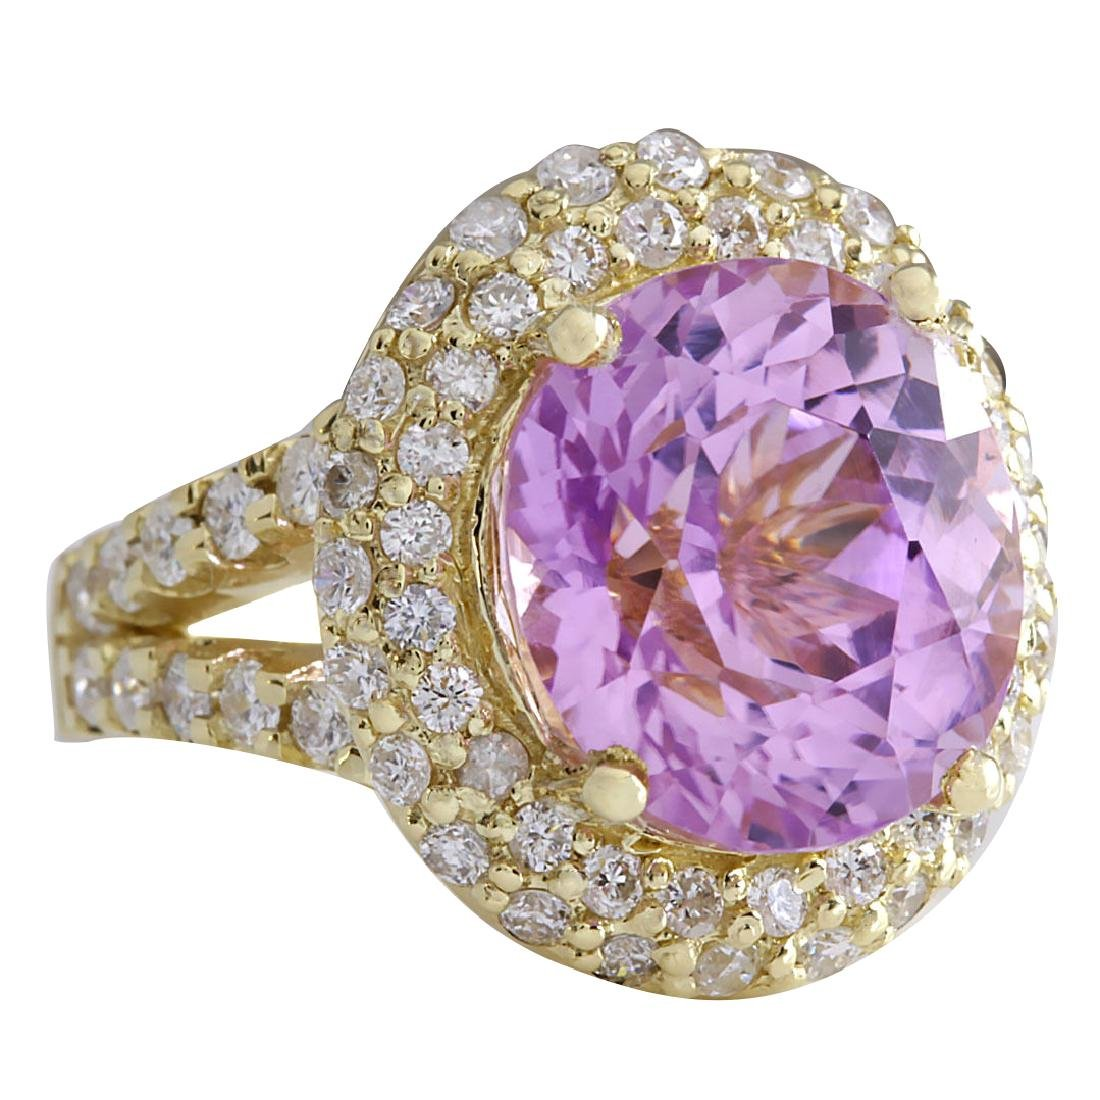 11.51CTW Natural Pink Kunzite And Diamond Ring In 18K - 2